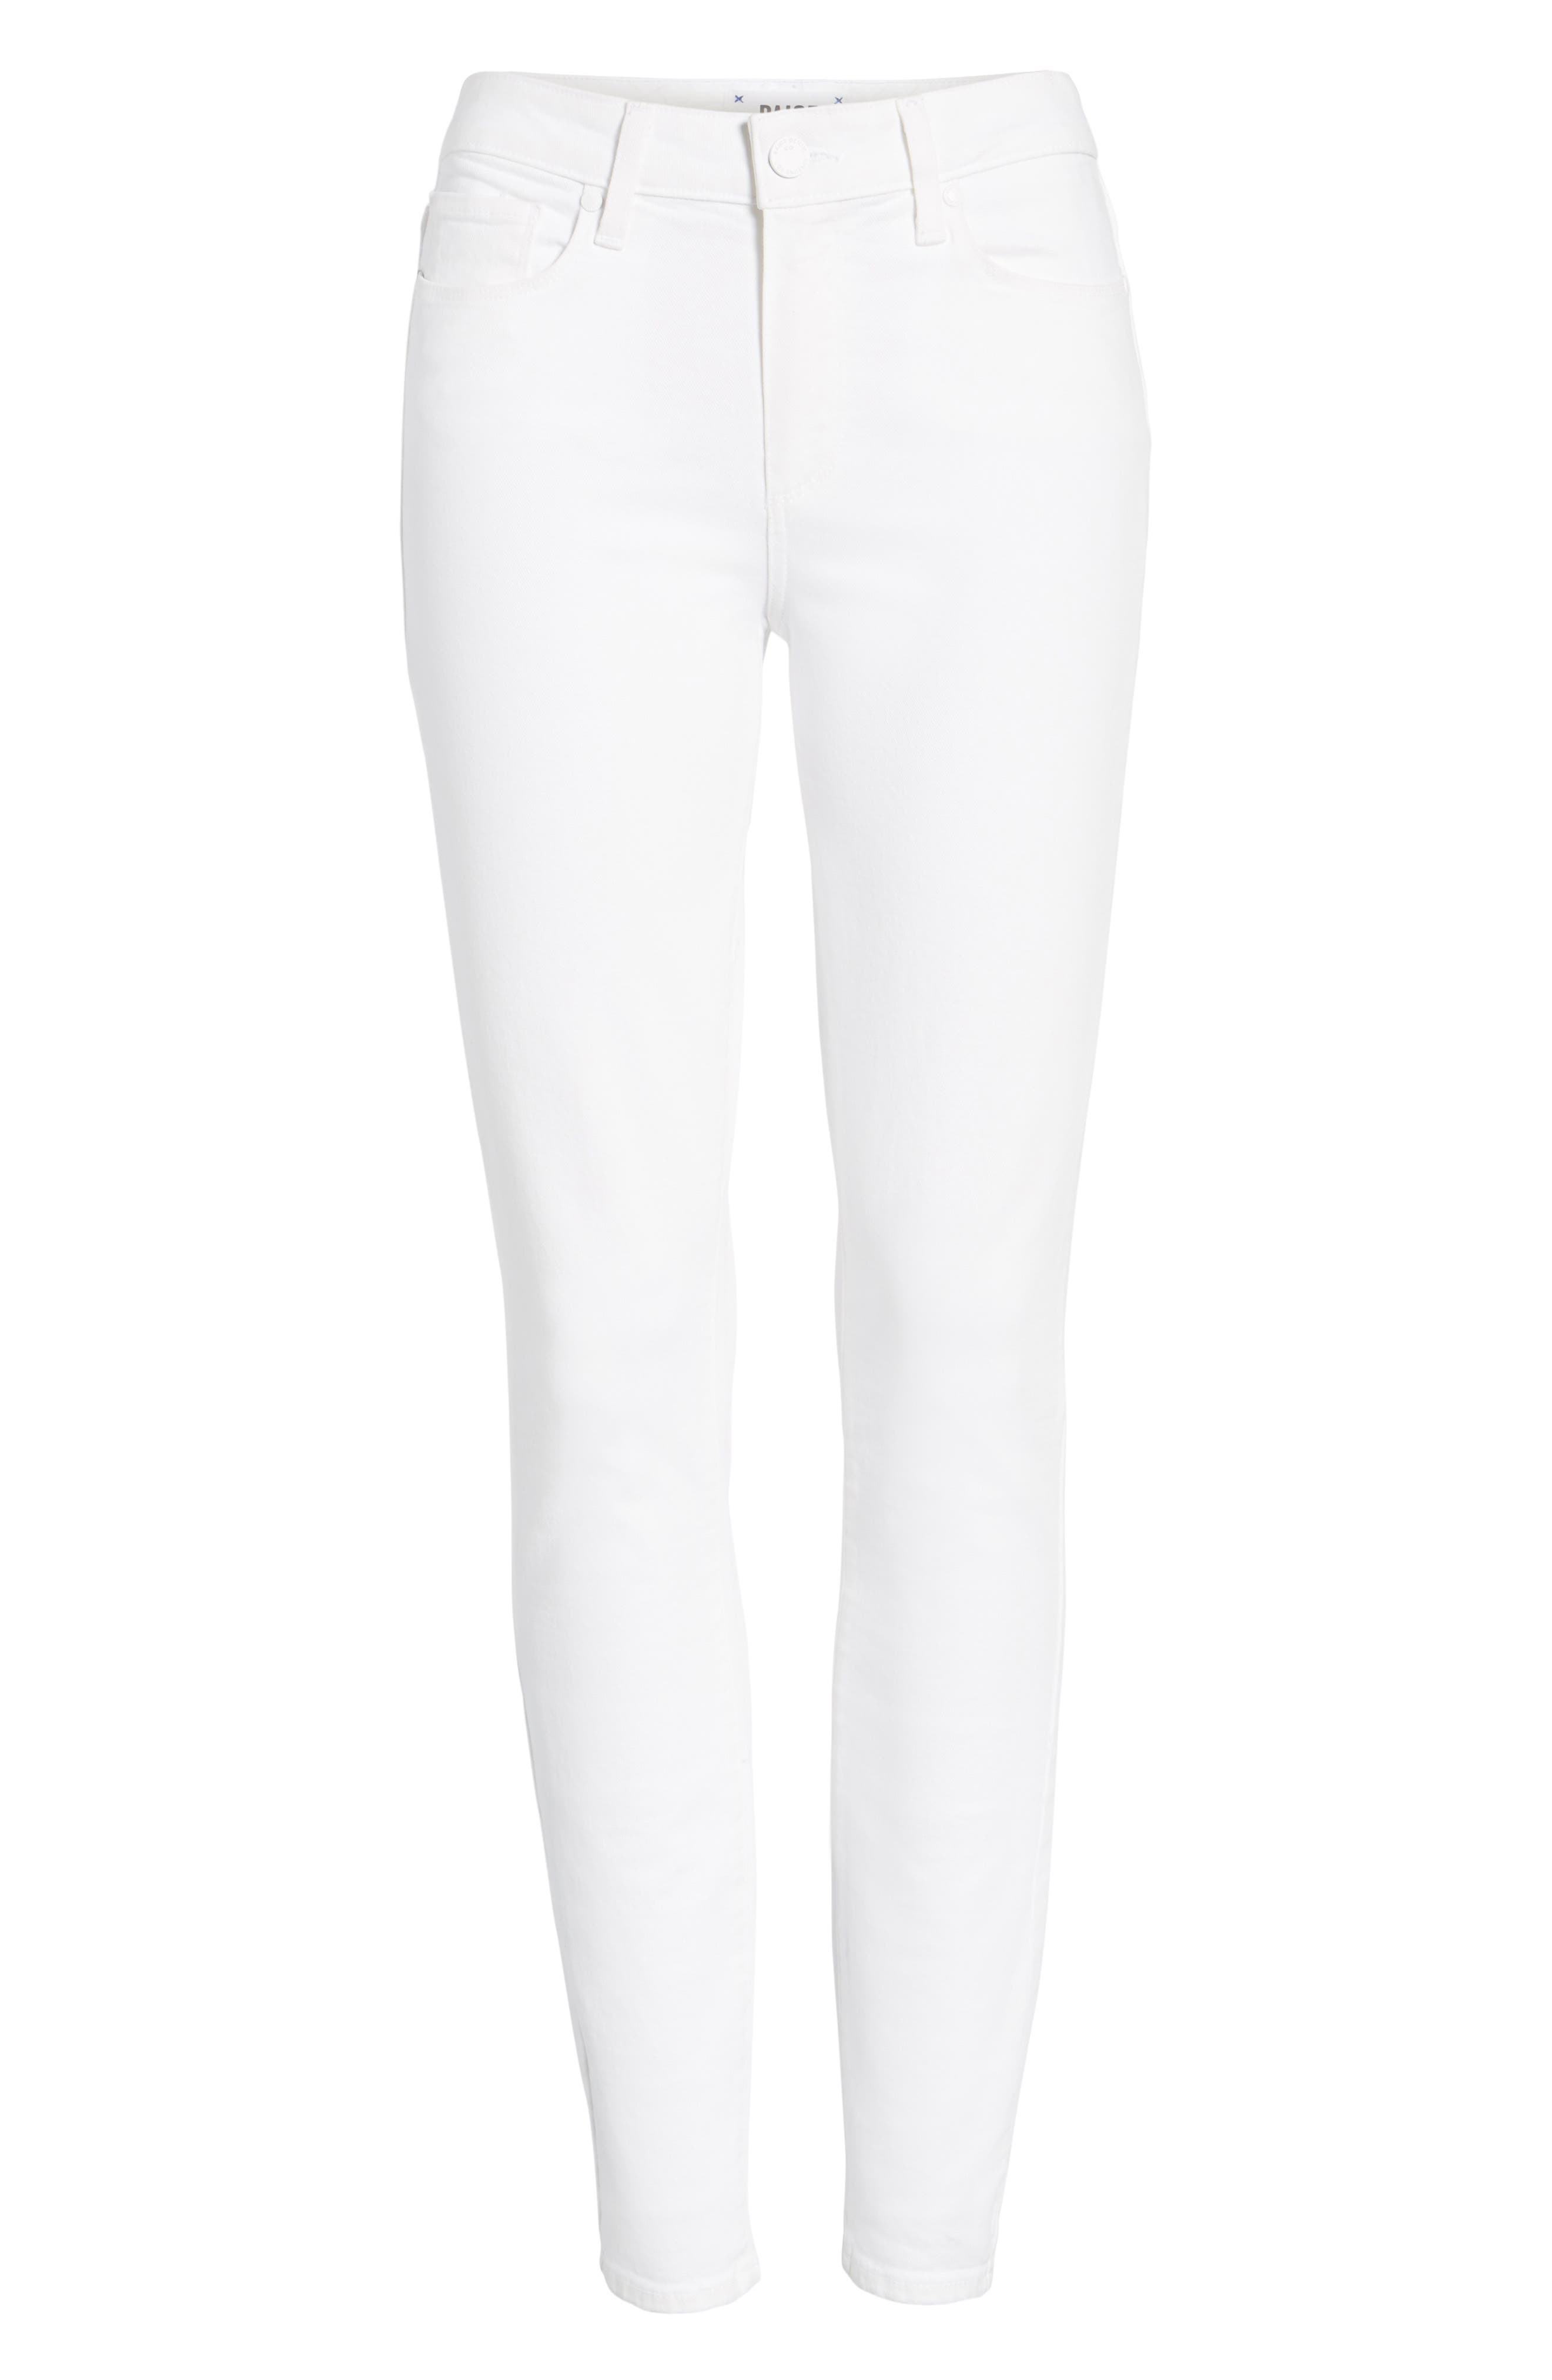 Hoxton High Waist Ankle Skinny Jeans,                             Alternate thumbnail 3, color,